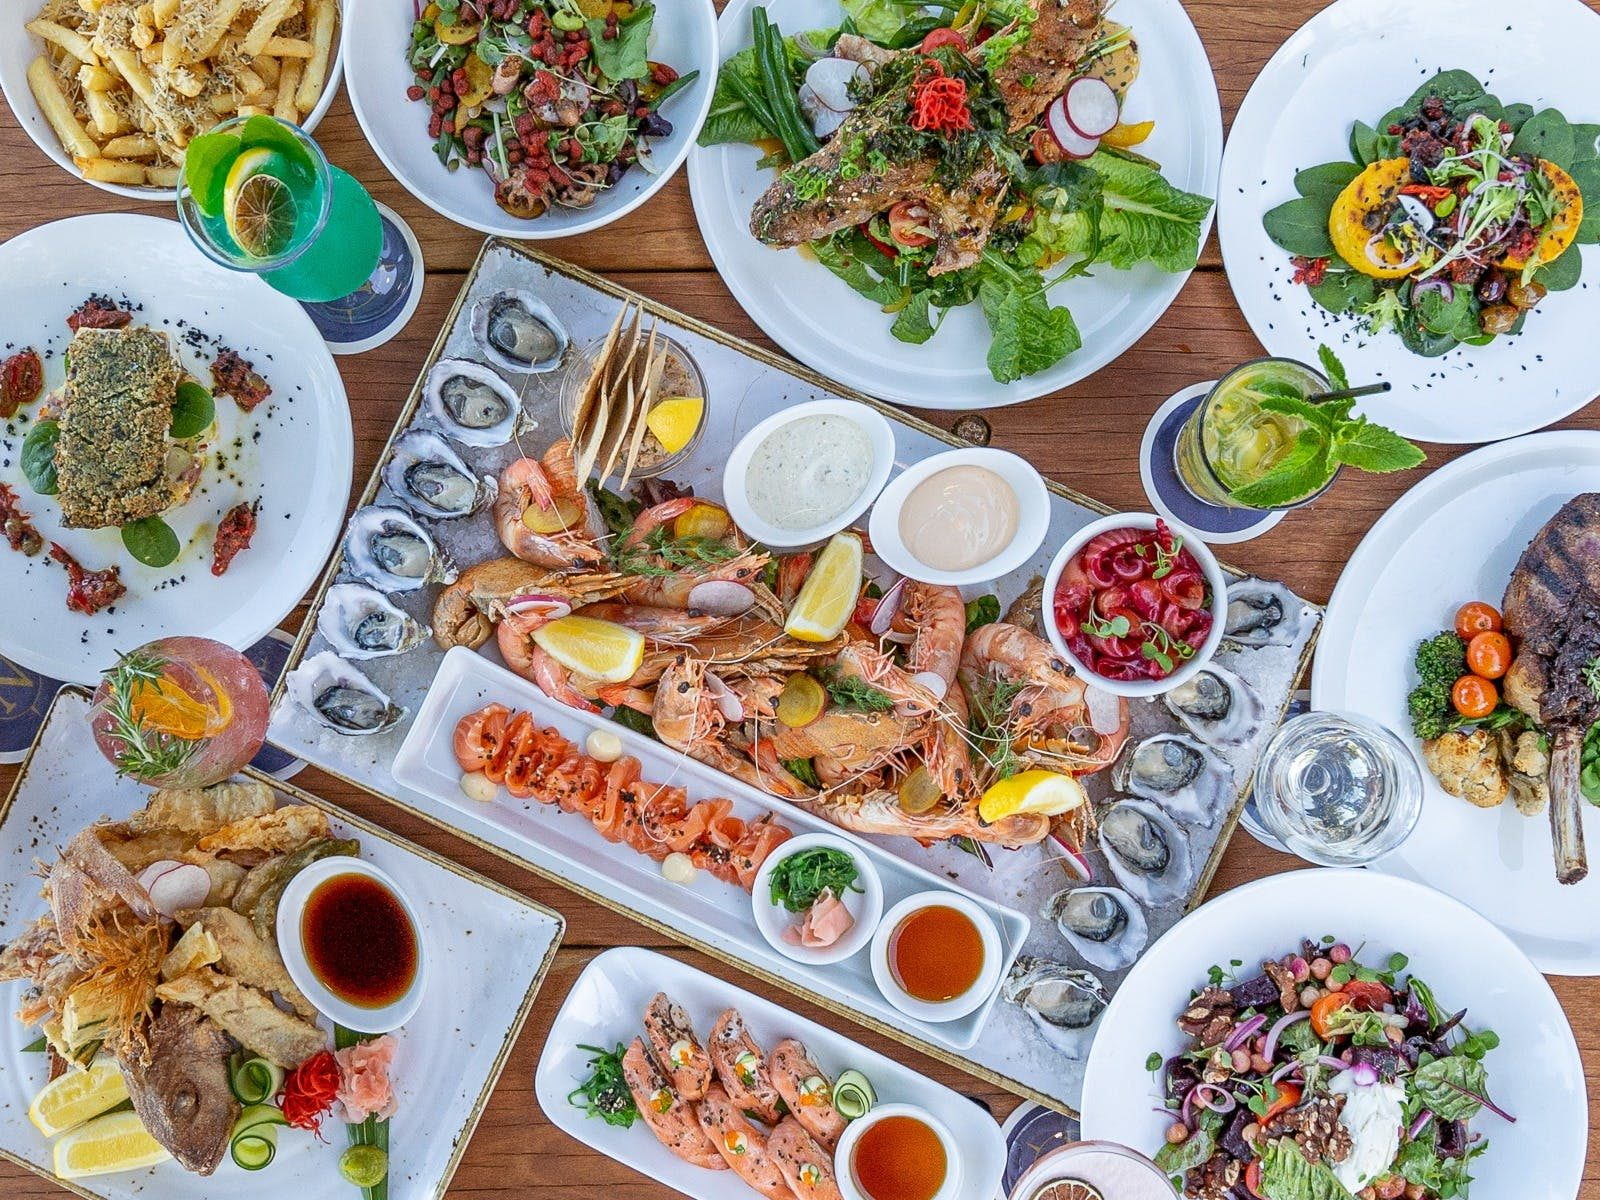 Selection of dishes served at Northerlies Beach Bar & Grill, Whitsundays